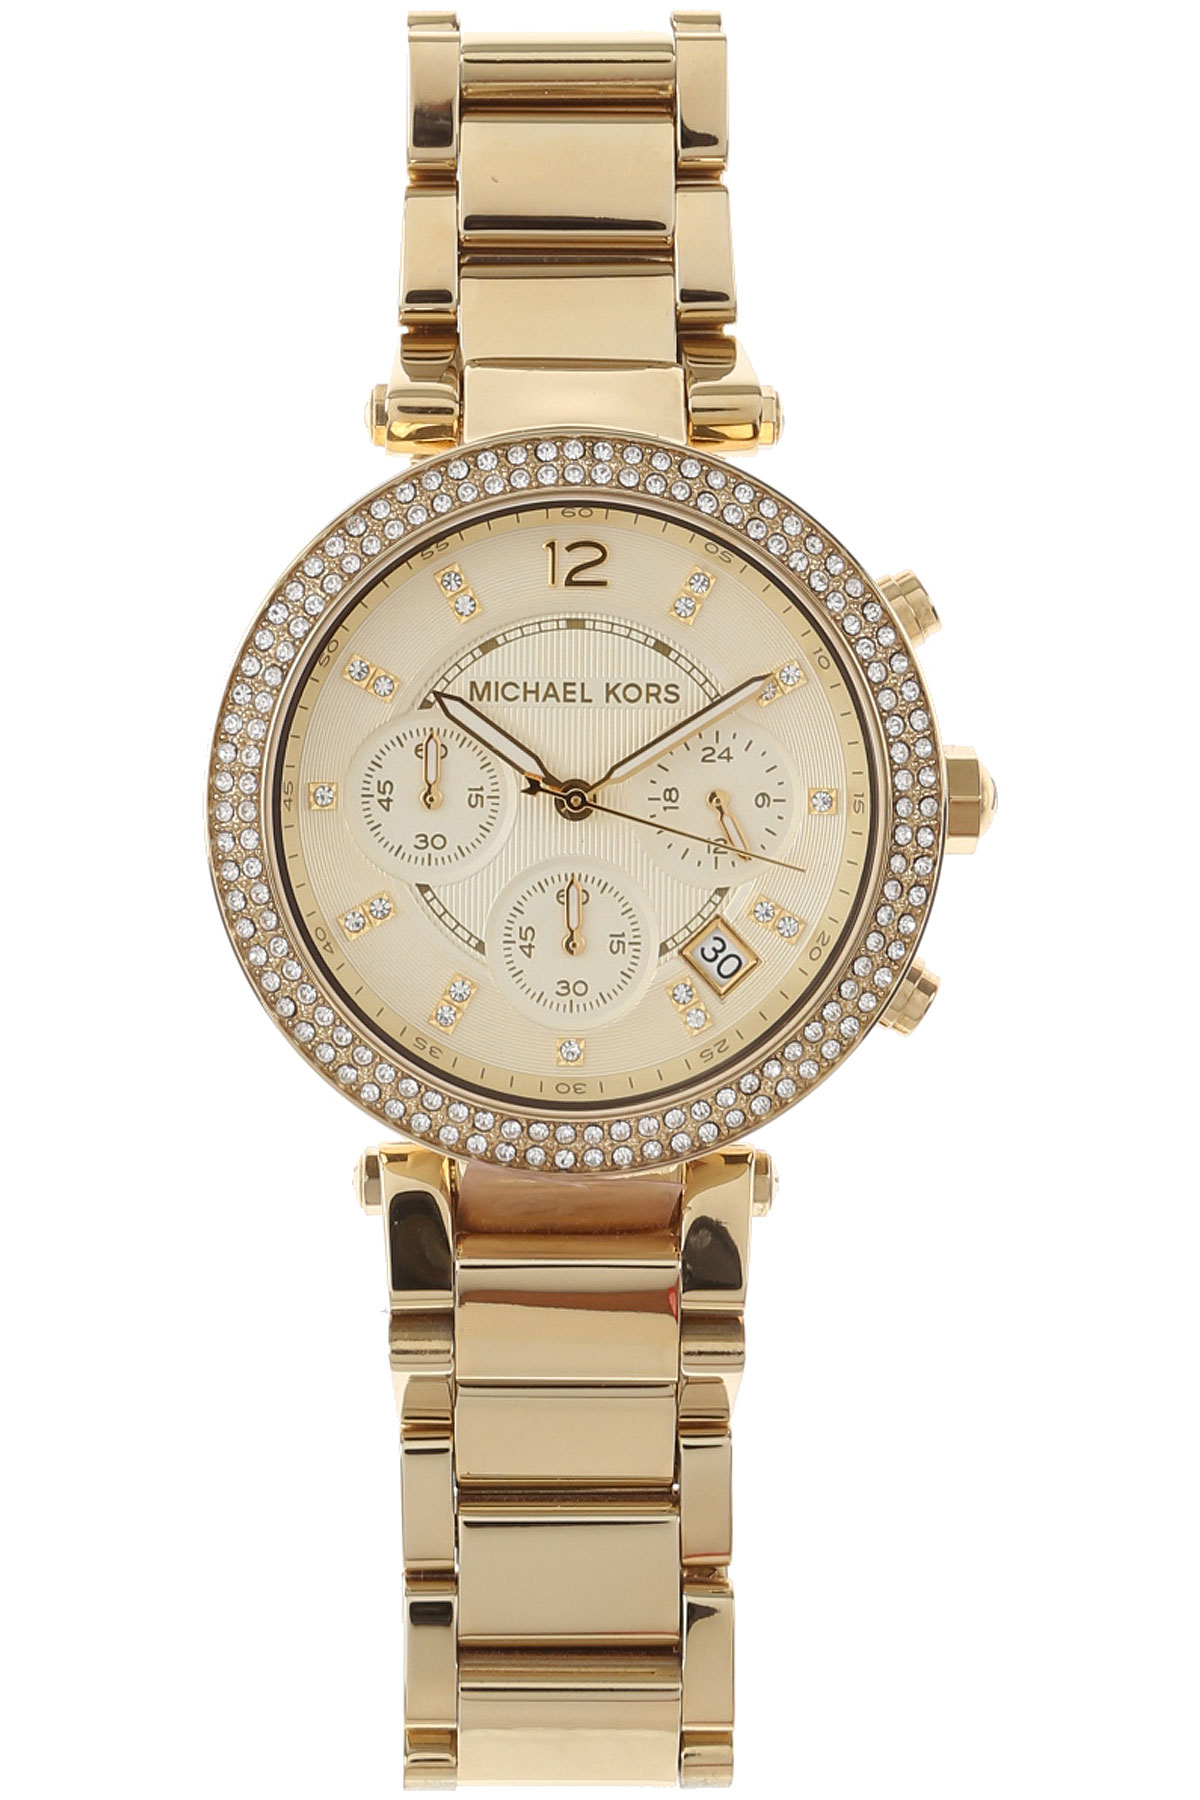 Michael Kors Watch for Women, Yellow Gold, Stainless Steel, 2017